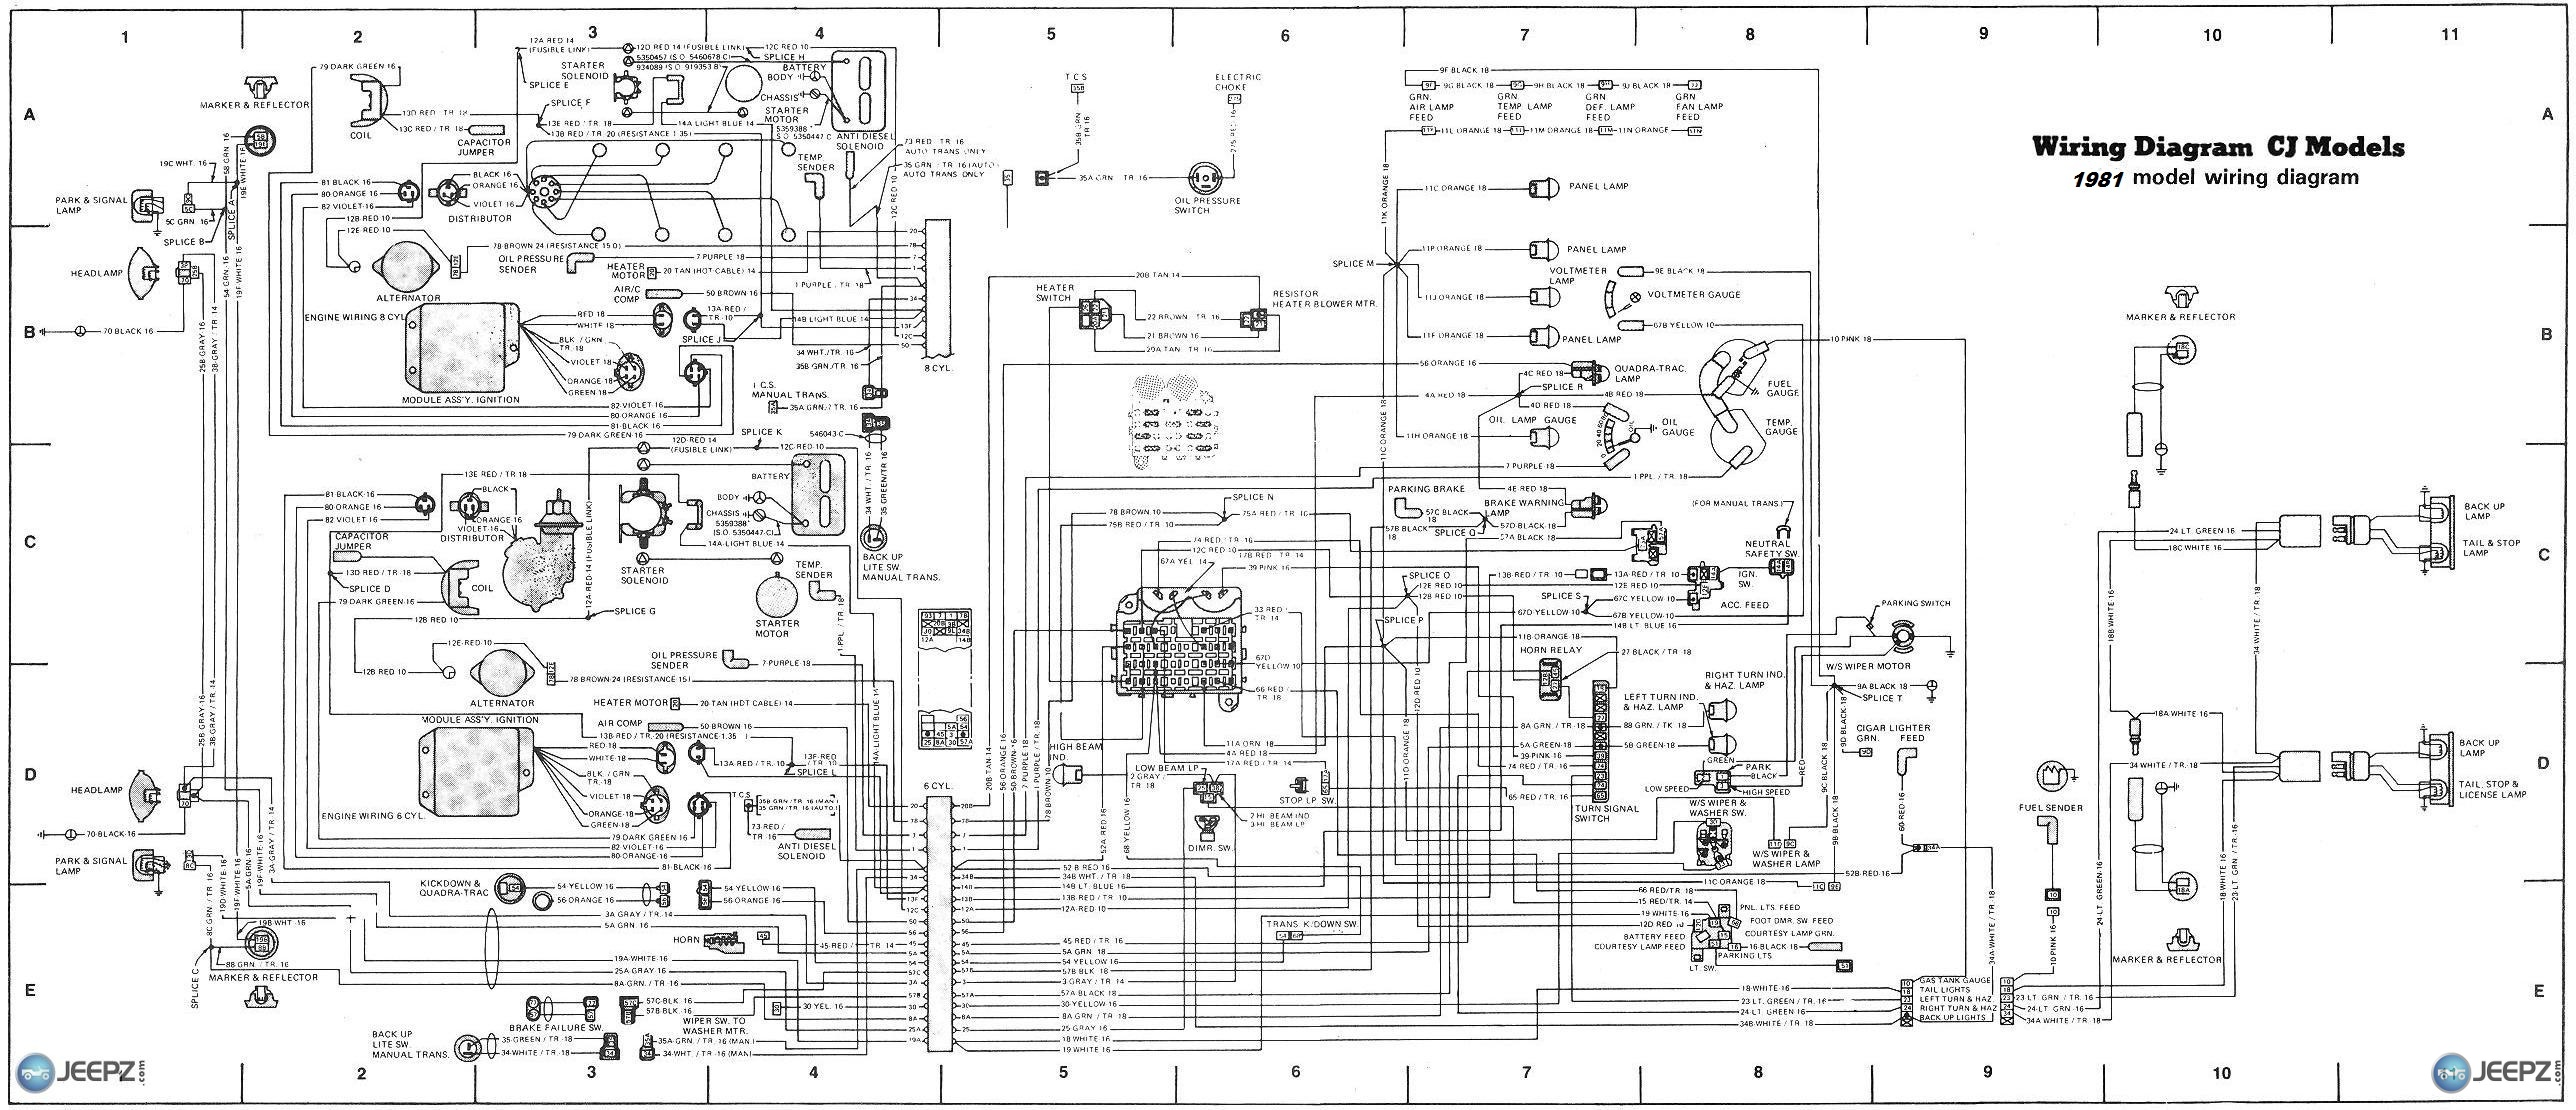 jeep vent wiring diagram jeep wiring diagrams jeep cj7 wiring diagram jeep wiring diagrams